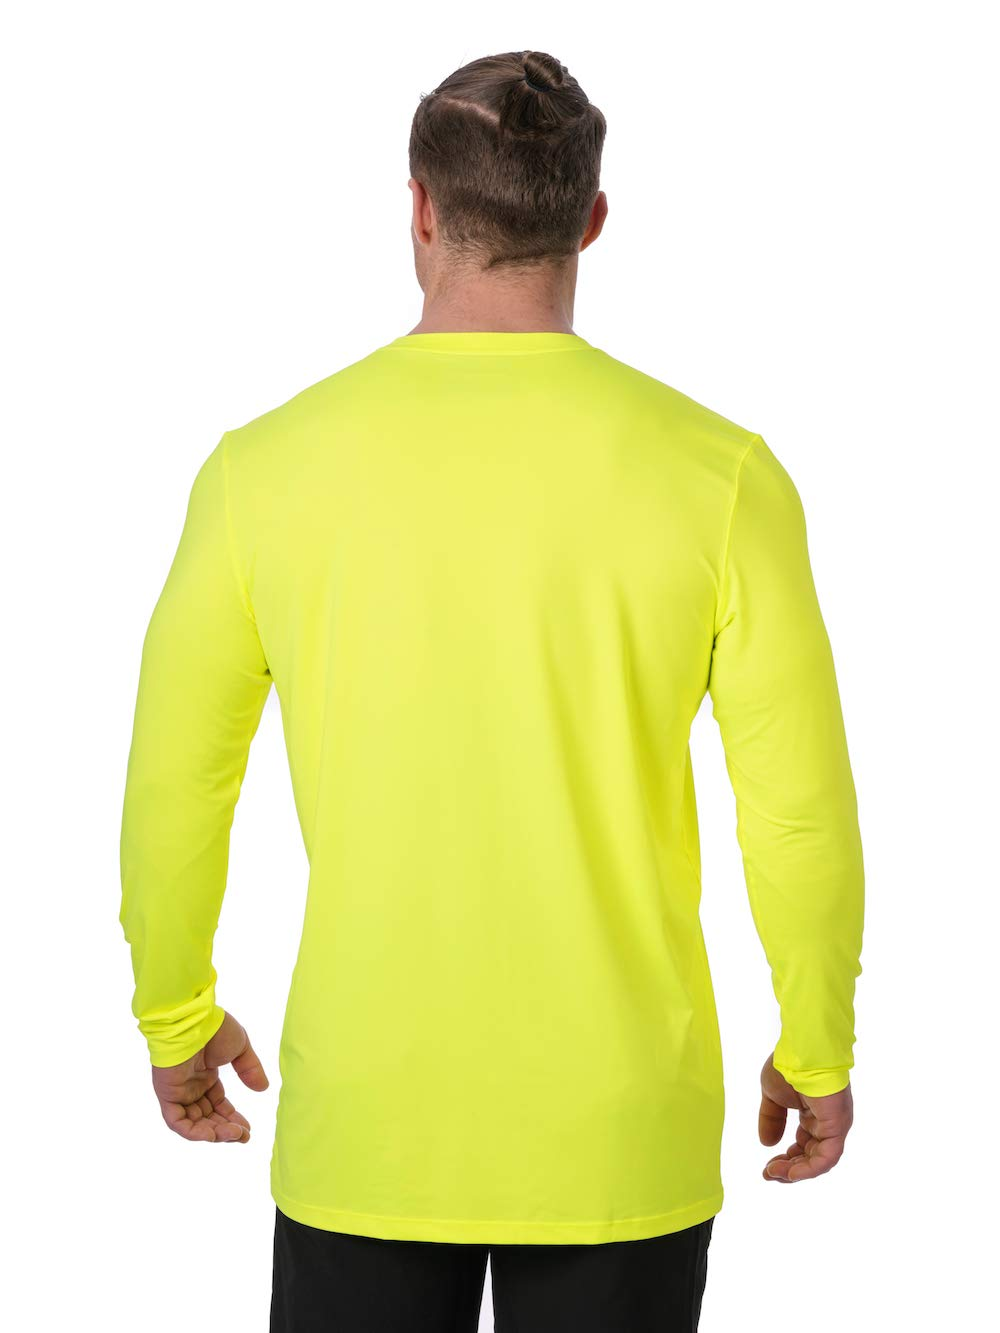 Arctic Cool Men/'s Instant Cooling Long Sleeve Pocket Workwear Shirt Performance Tech Breathable UPF 50 Sun Protection Moisture Wicking Comfortable Work Quick Drying Top